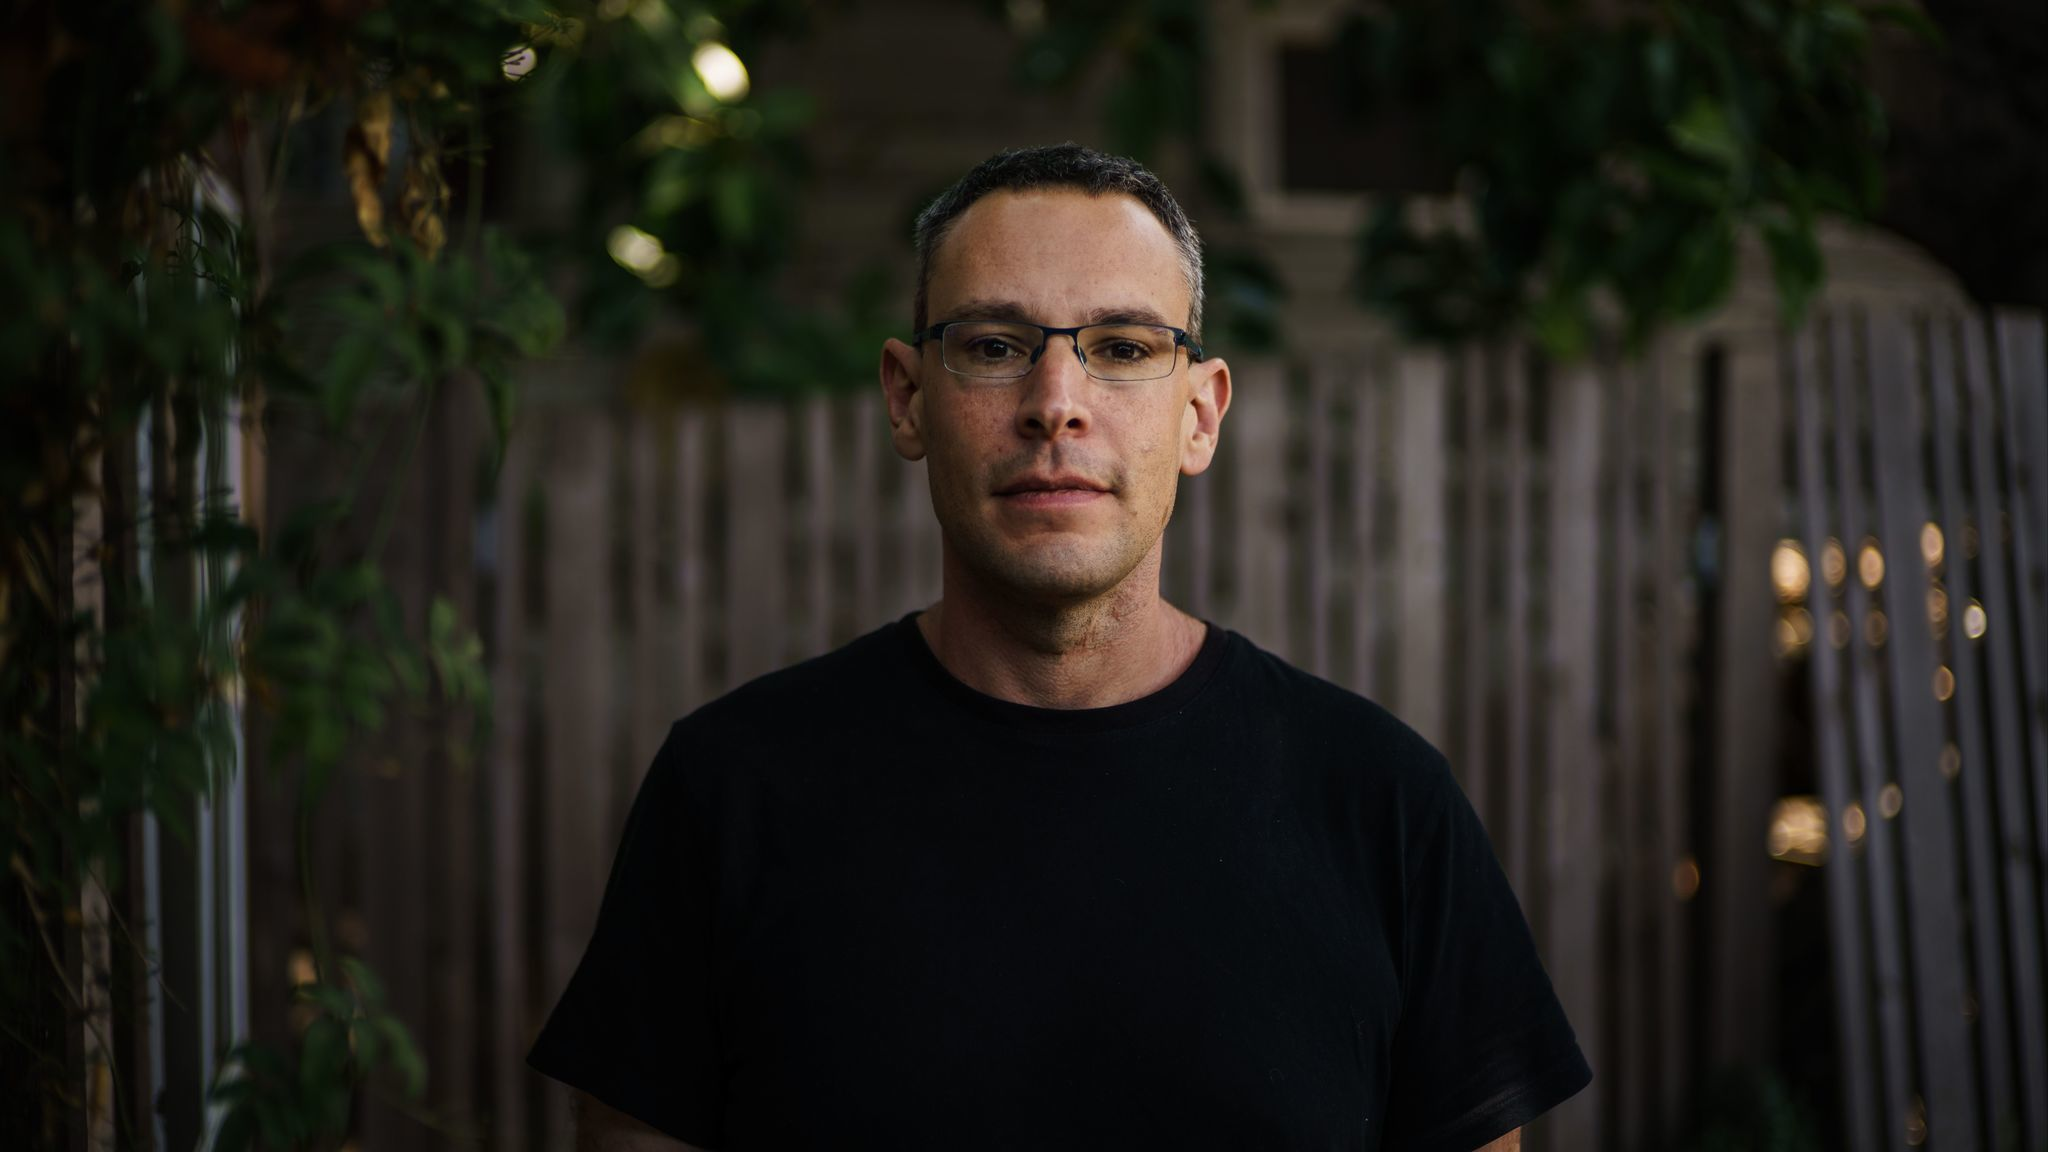 Ben Loory, who reads Oct. 25 at 8 p.m.